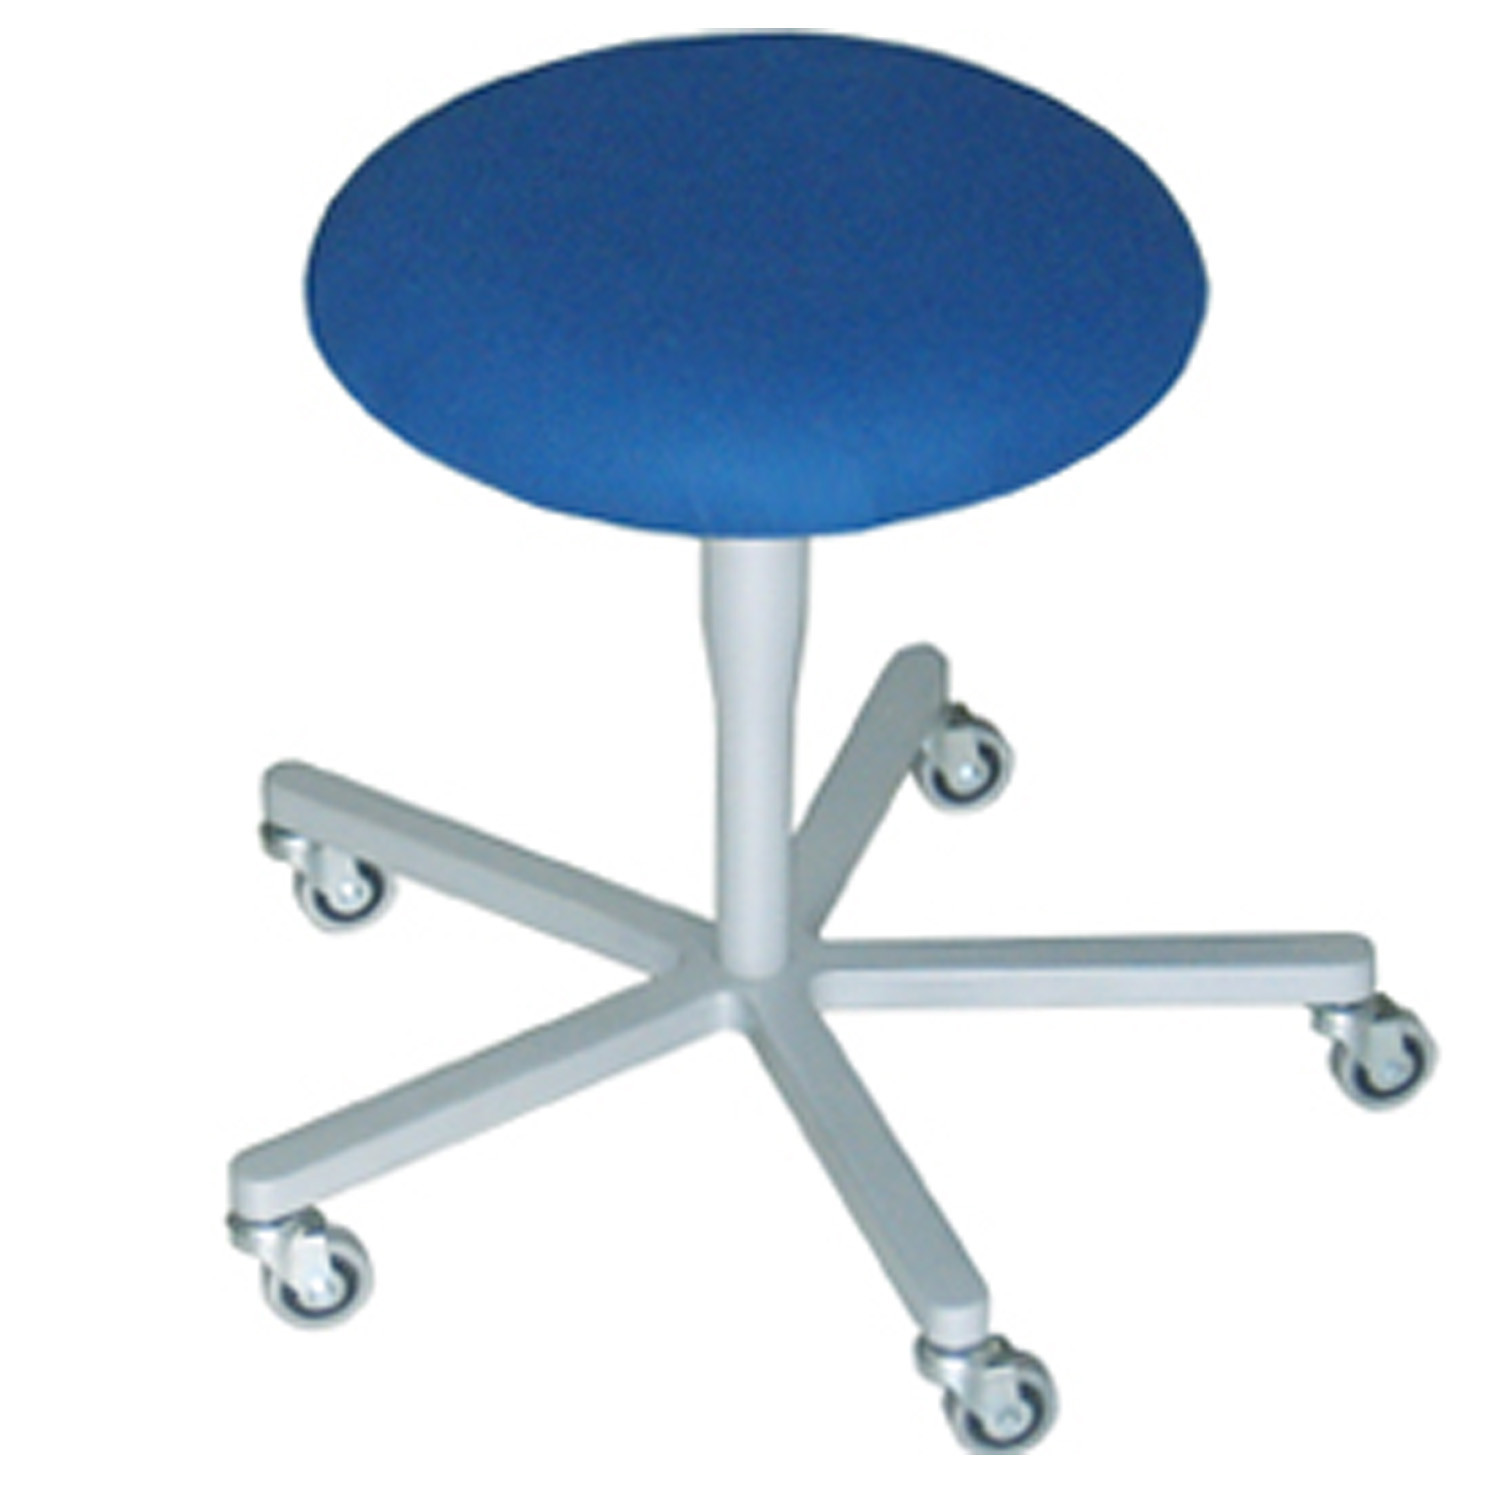 Atlas Stool 752 - cross base on castors